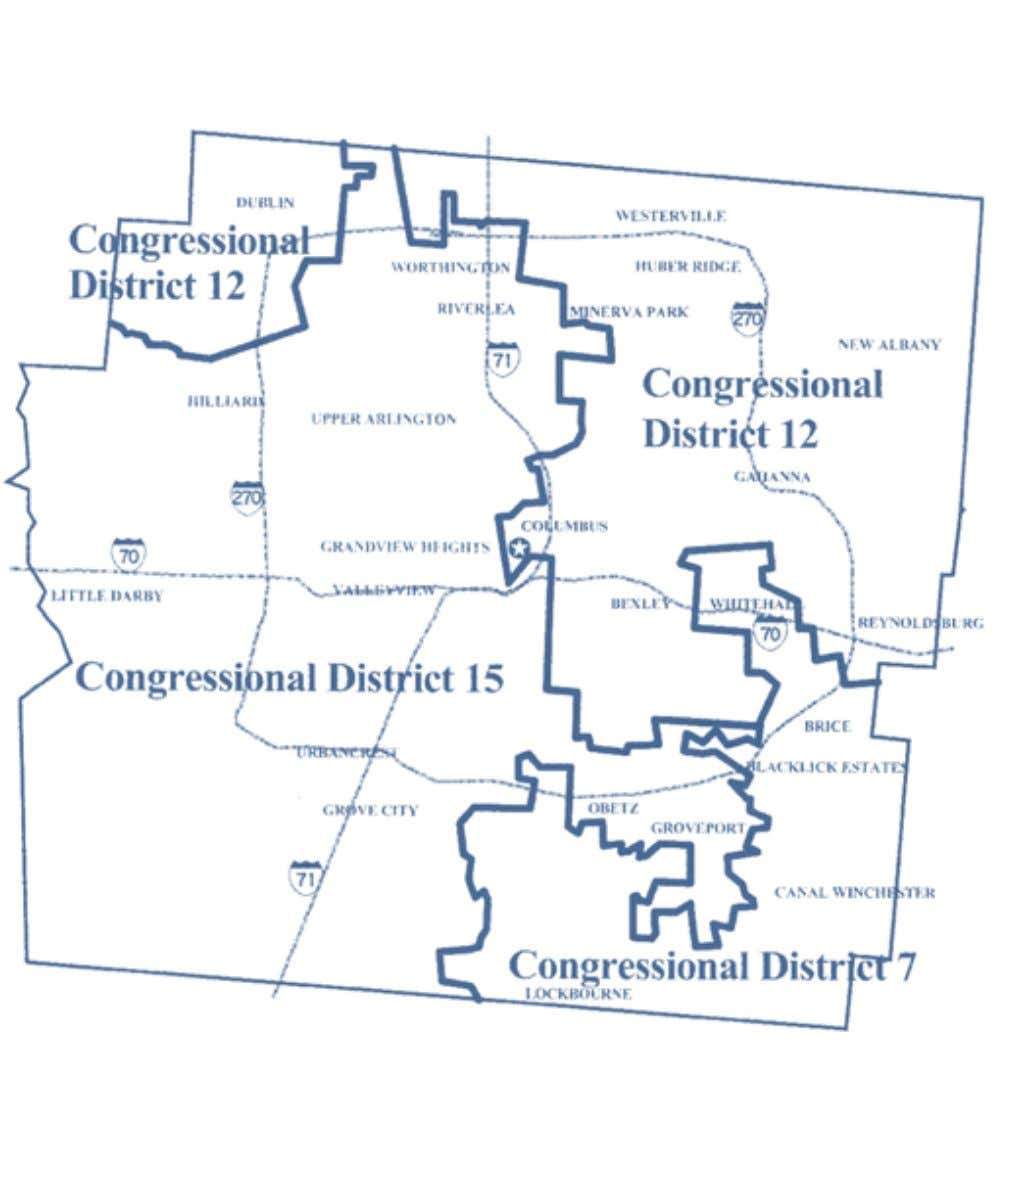 2002-2012 OhiO District Maps Franklin County Congressional Districts Office of the Ohio Secretary of State 11